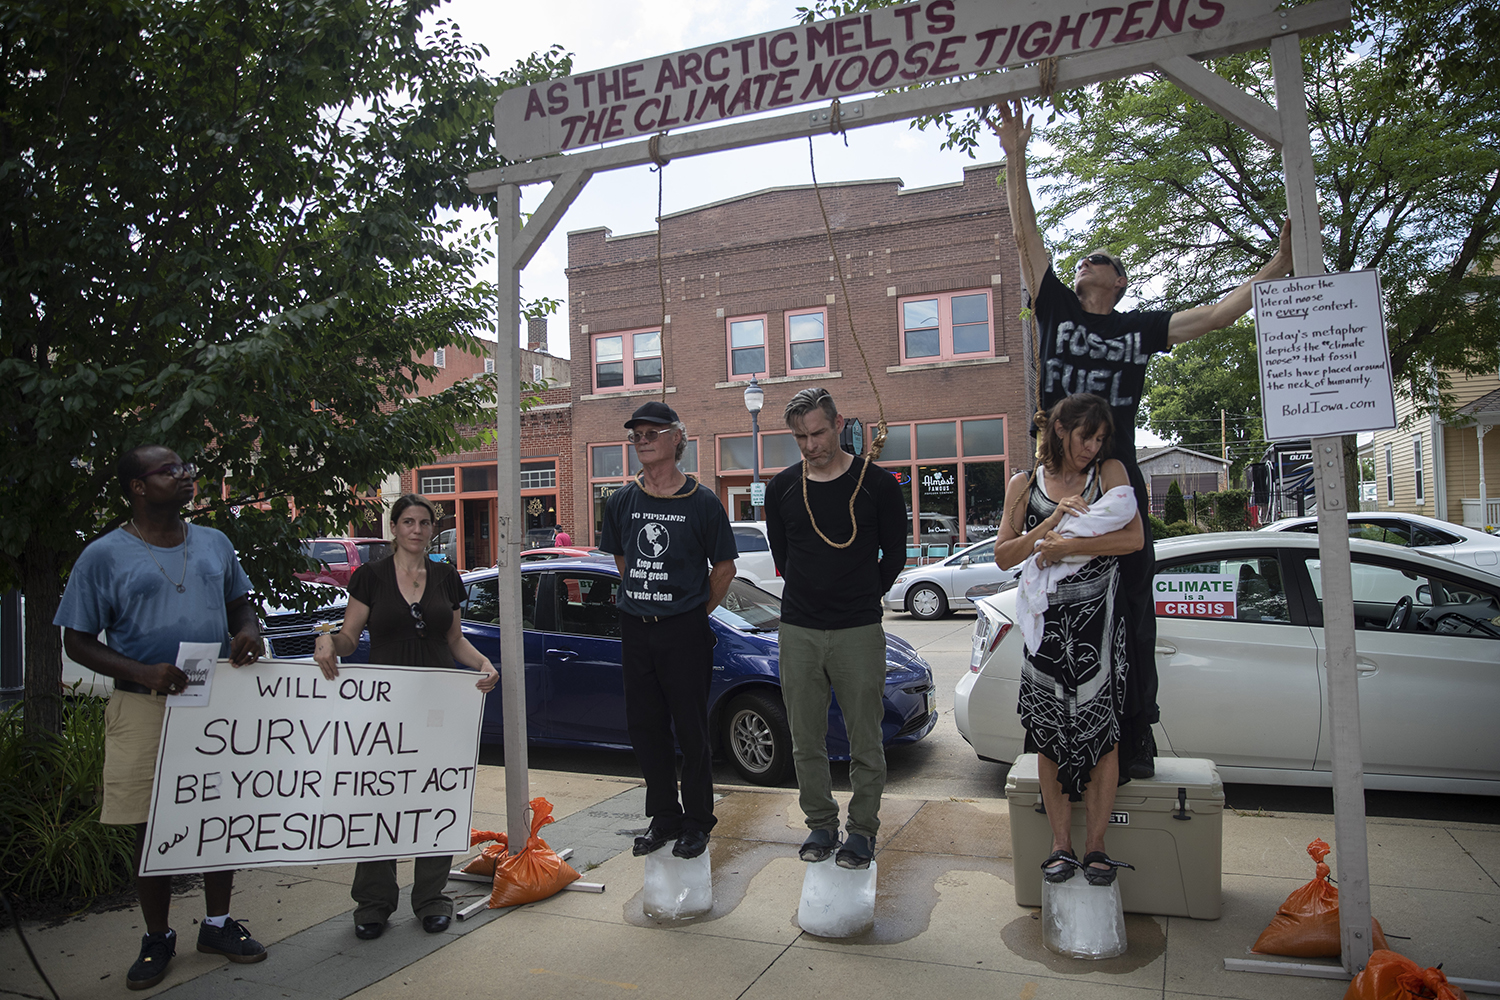 Demonstrators protest climate change action outside of the Progress Iowa Corn Feed in Newbo City Market in Cedar Rapids on July 14, 2019. 10 candidates came to meet supporters and give speeches. Demonstrators stood on a block of ice with nooses around their necks.